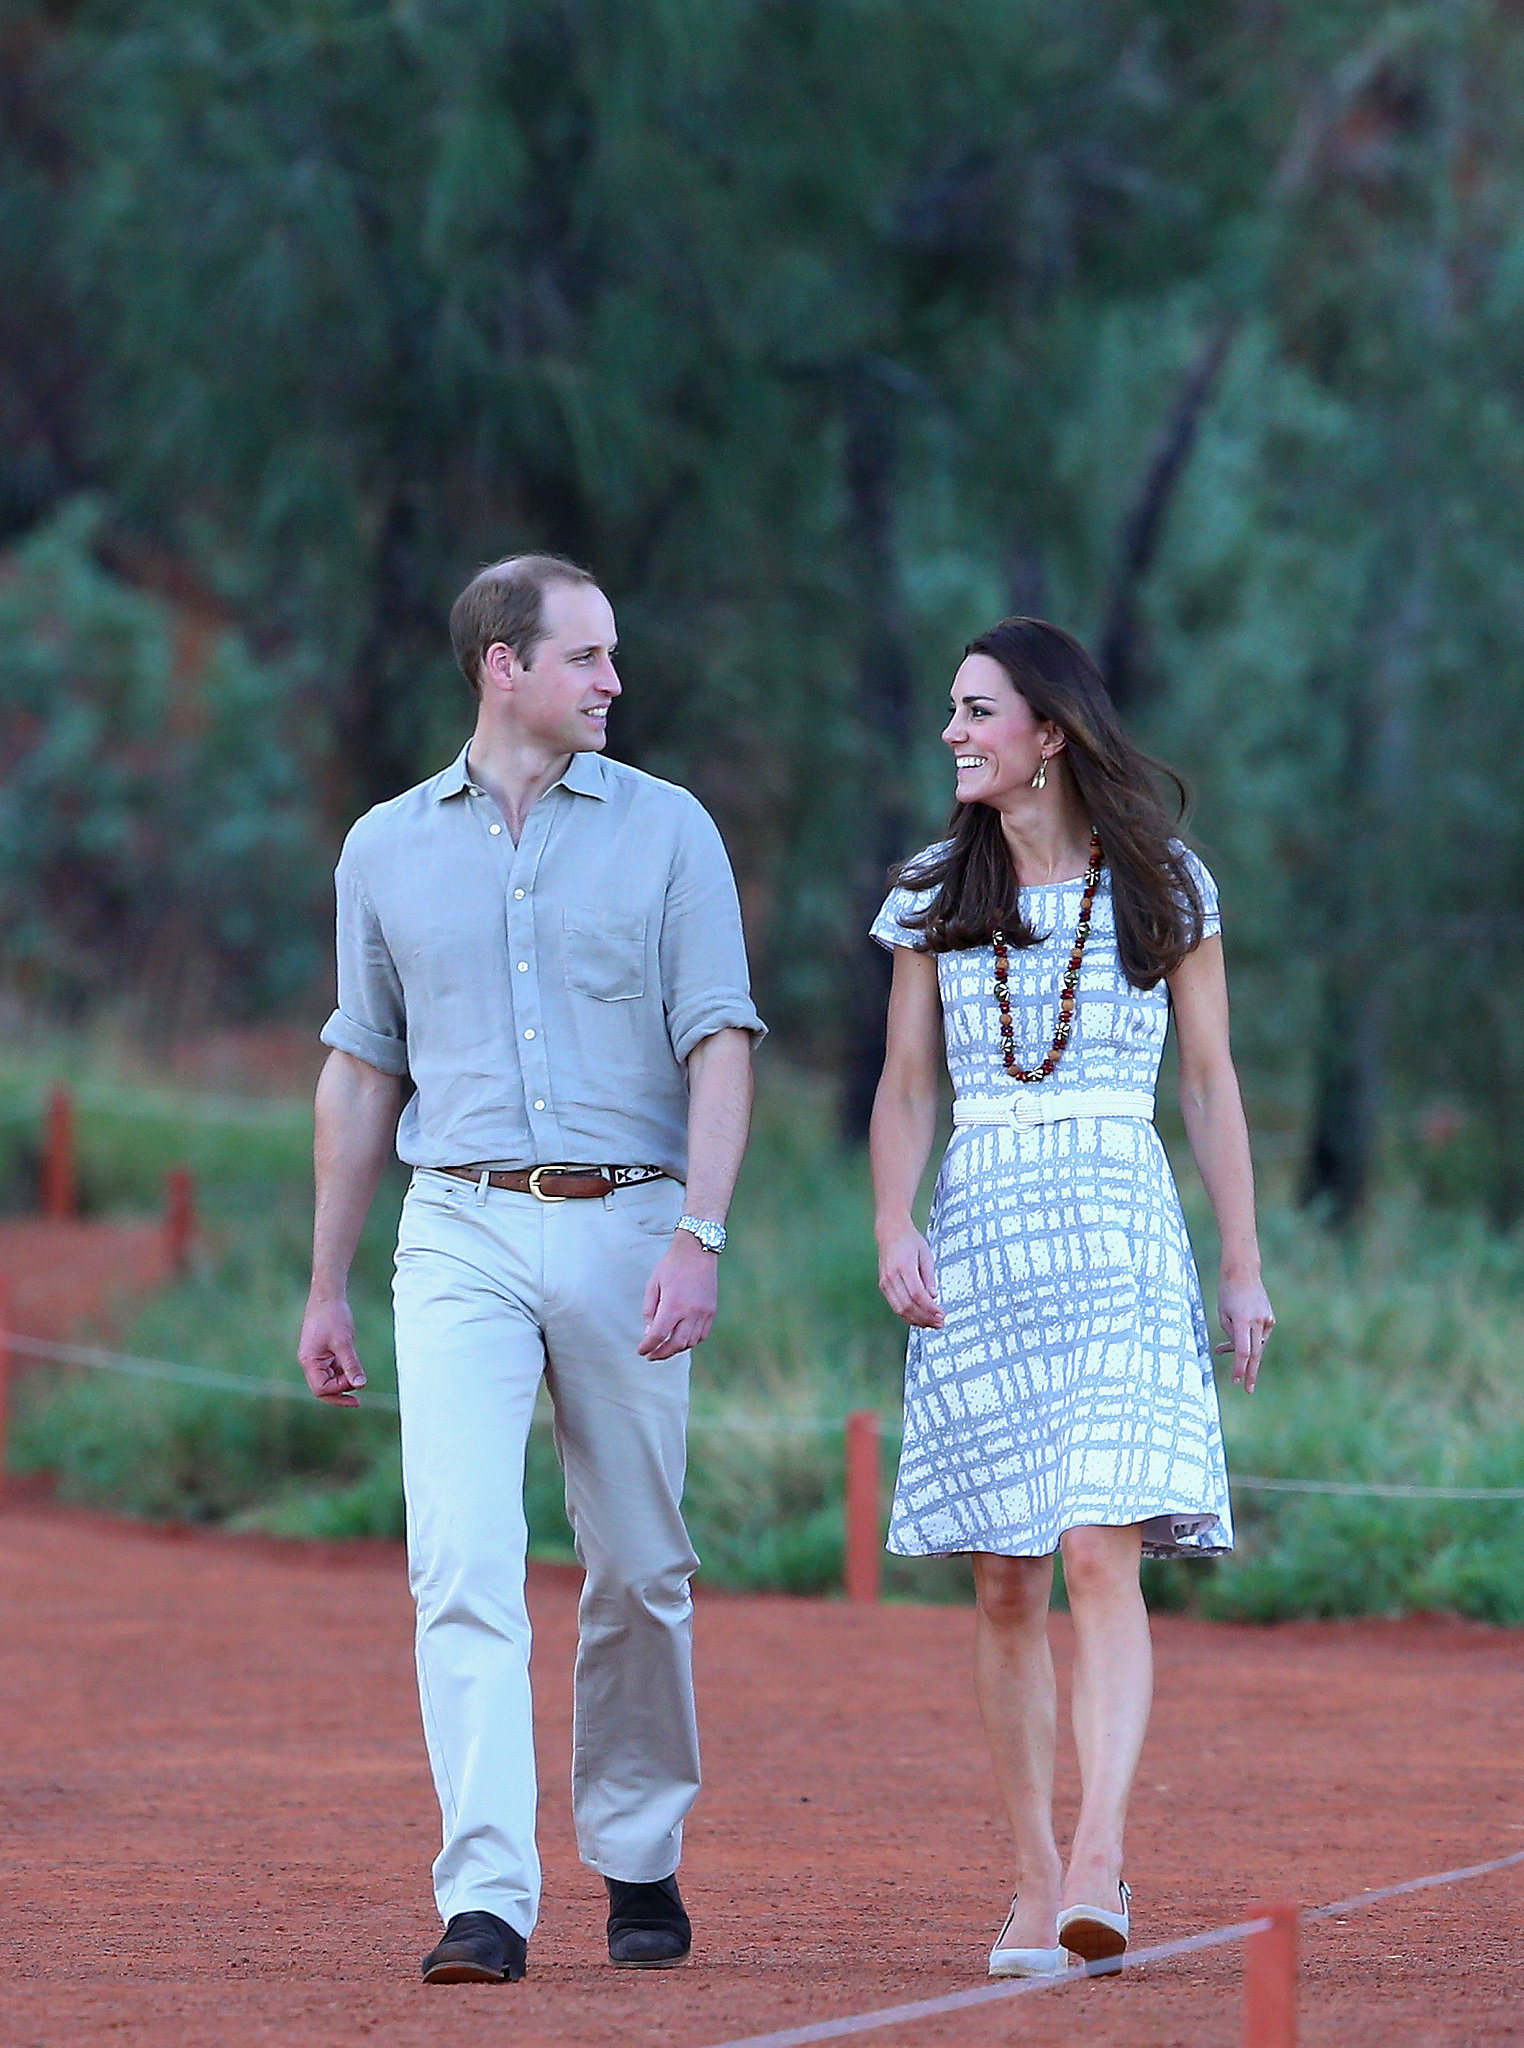 Prince William and Kate talked while walking around the base of Uluru in Ayers Rock on their 2014 trip to Australia.